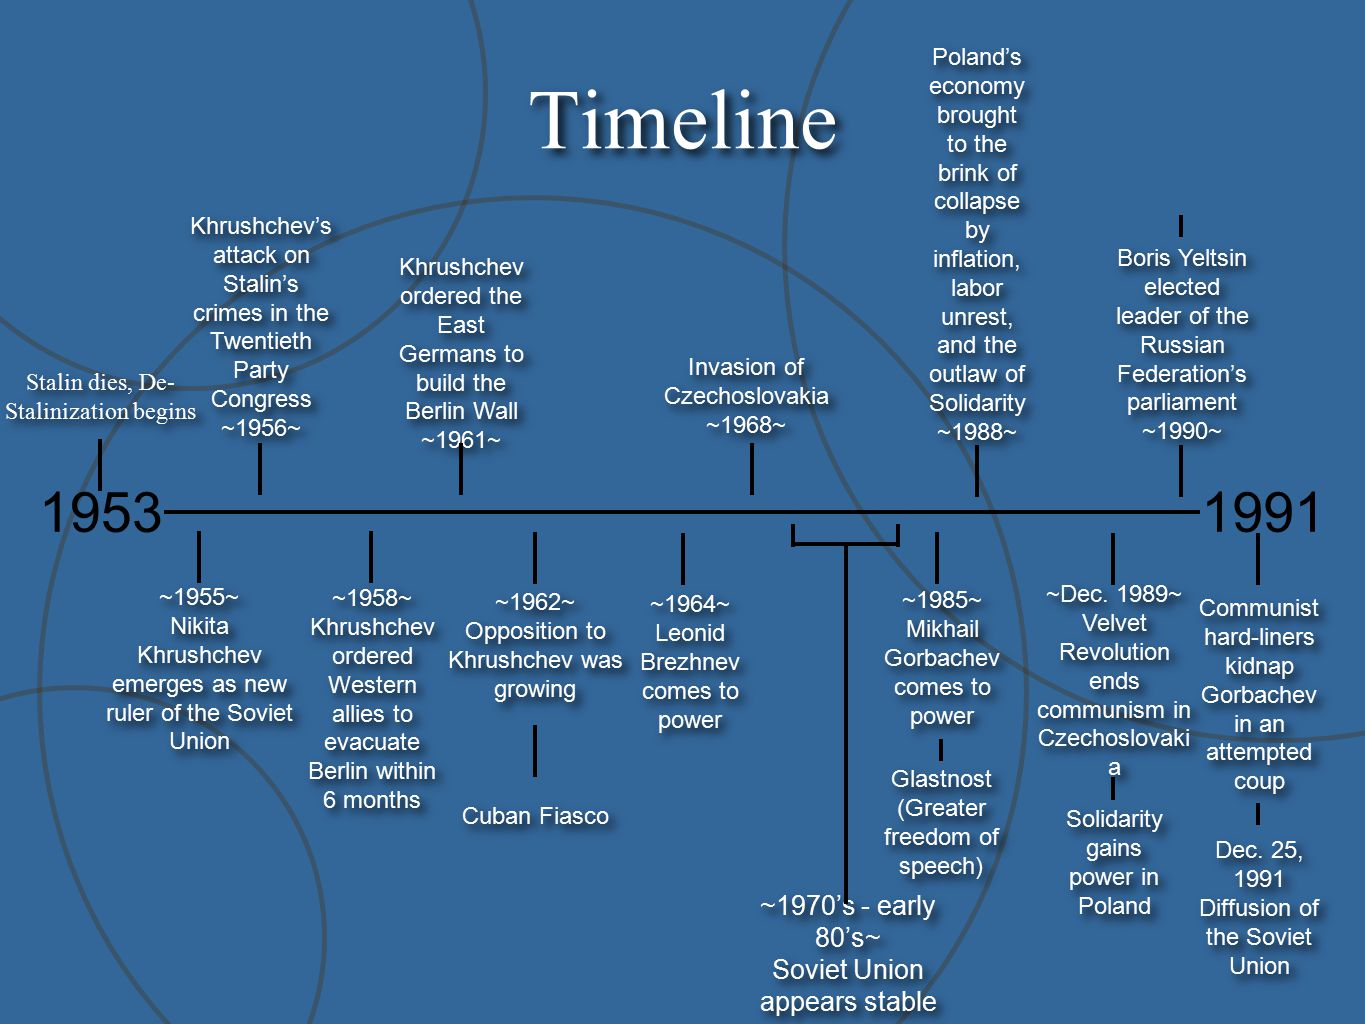 russia timeline 1985-1991: general secretary mikhail gorbachev attempts to improve faltering economy with glasnost (openness) and perestroika (restructuring.